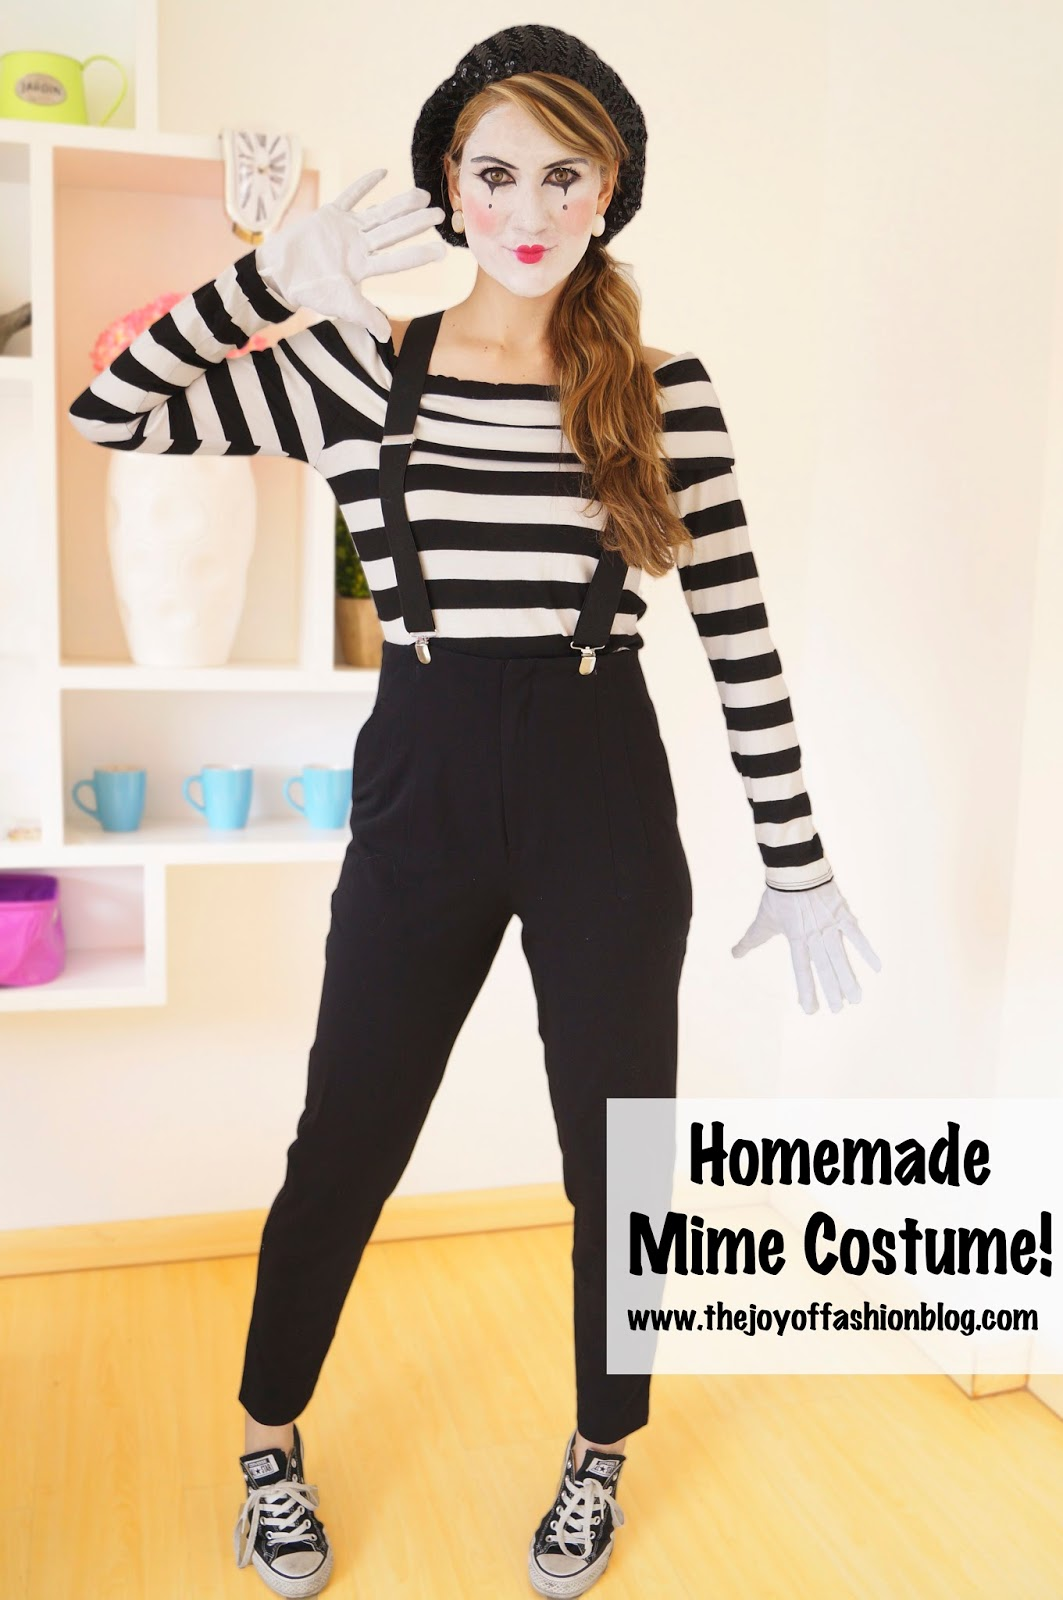 Mime Halloween Costume  sc 1 st  The Joy of Fashion & The Joy of Fashion: Halloween: Last Minute Homemade Mime Costume